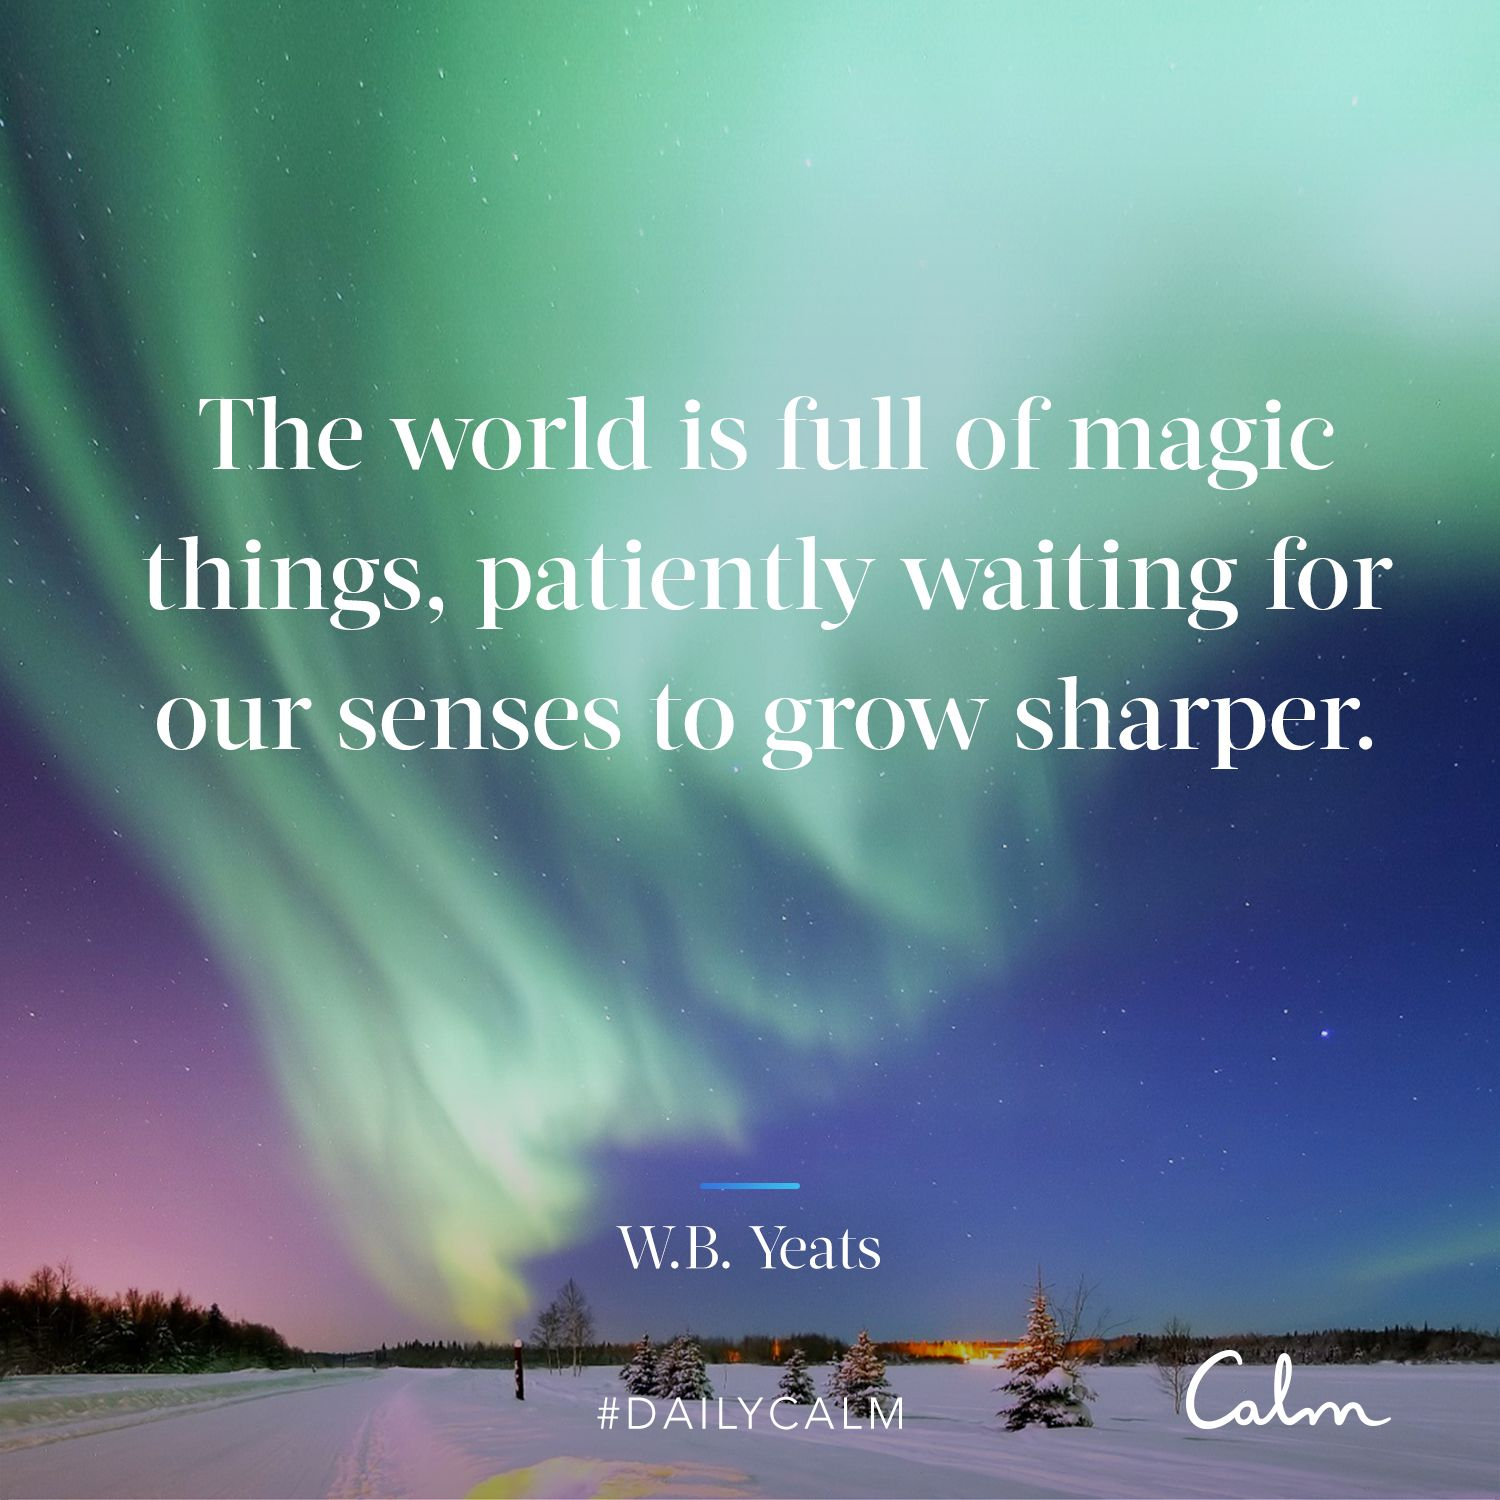 Daily calm quotes the world is full of magic things